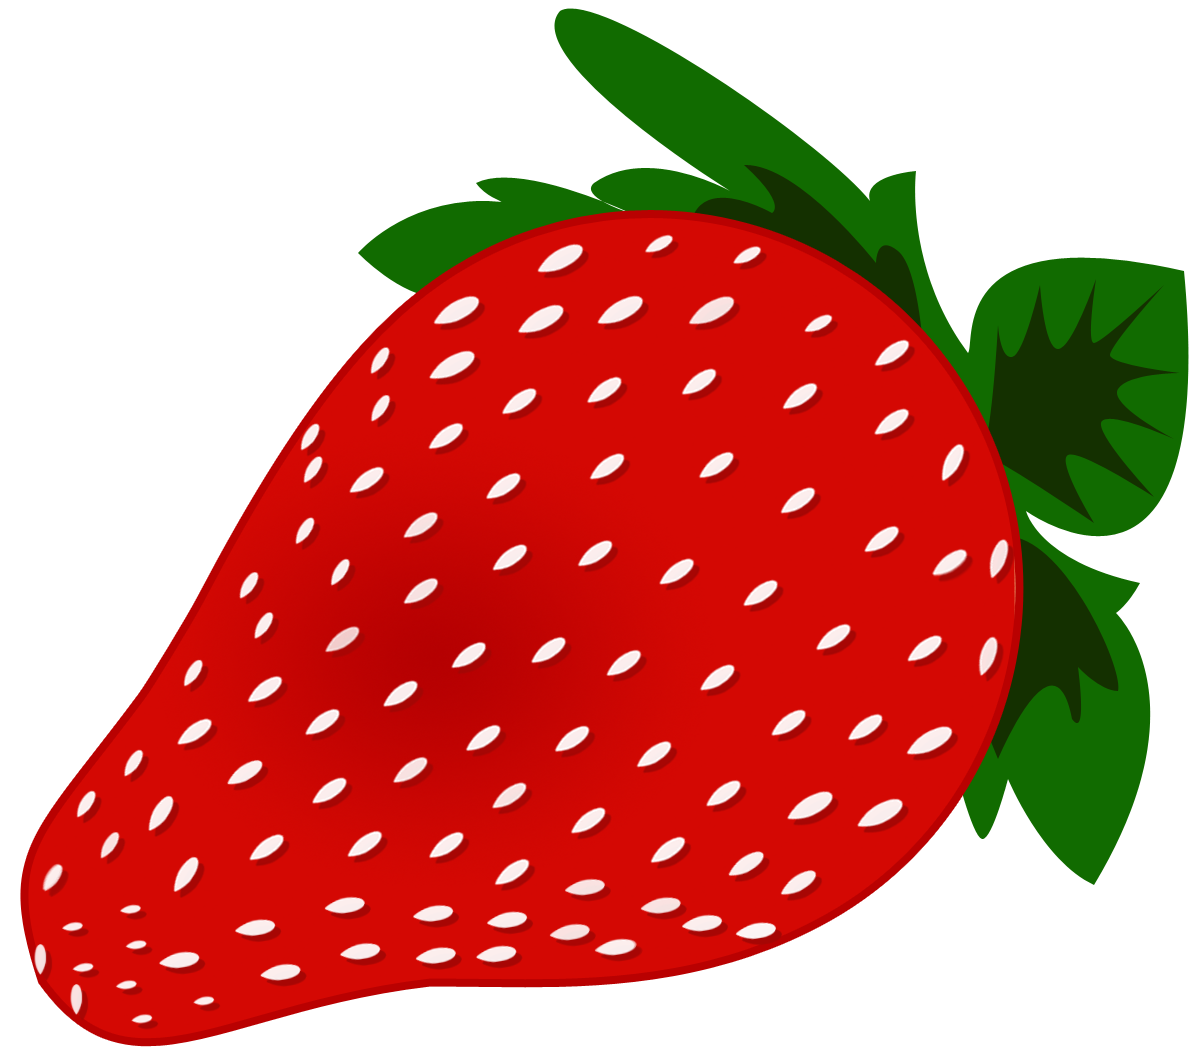 strawberry clip art pictures - photo #16